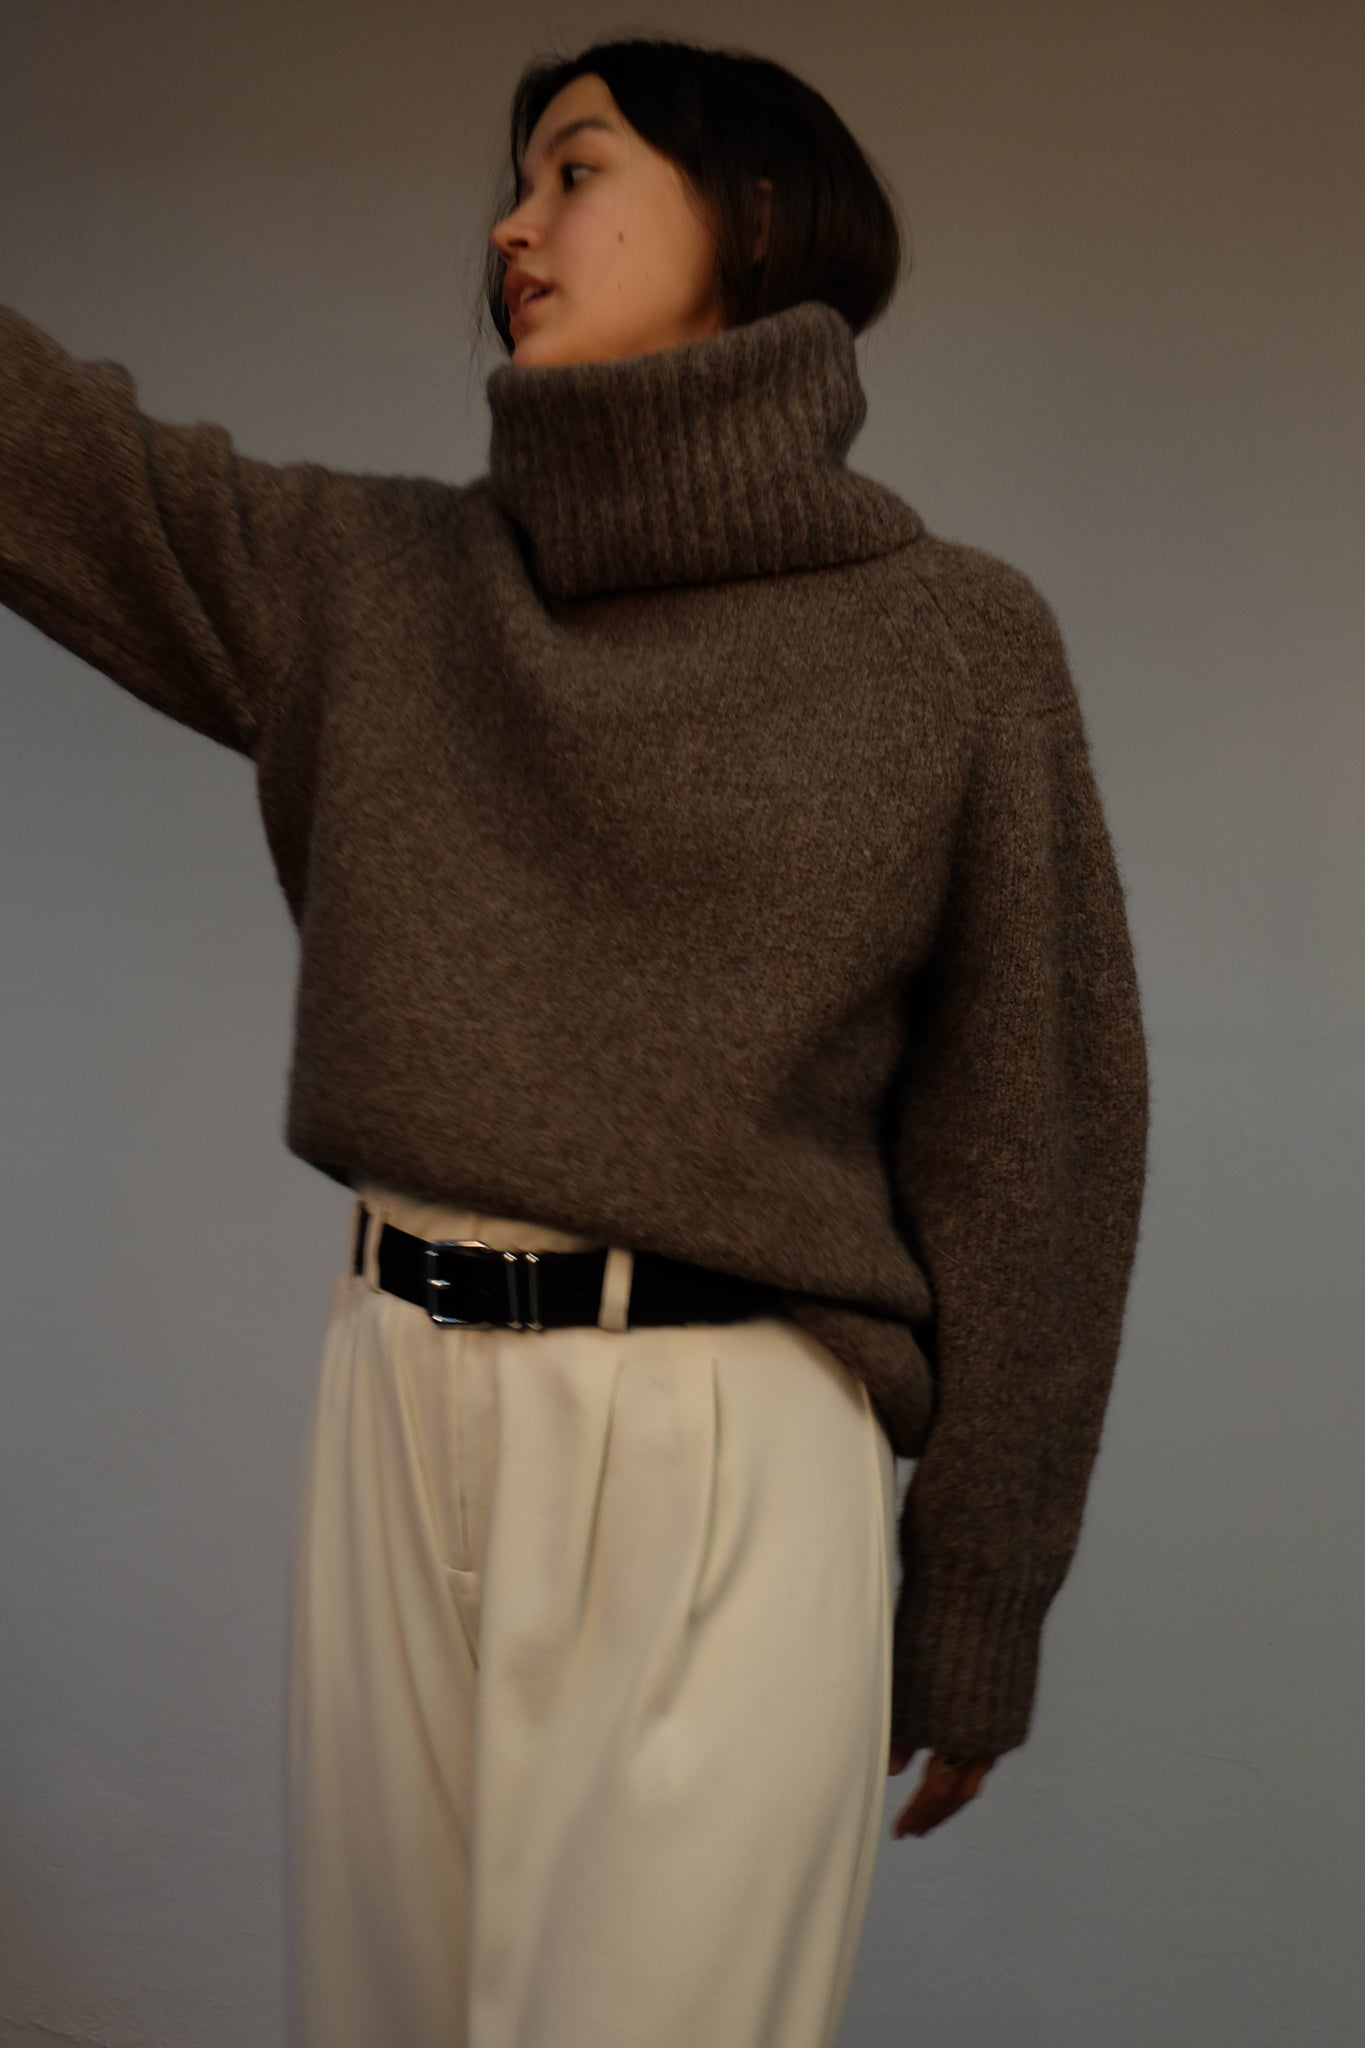 GIARA ALPACA KNIT SWEATER BY LOULOU STUDIO IN MILK CHOCLATE